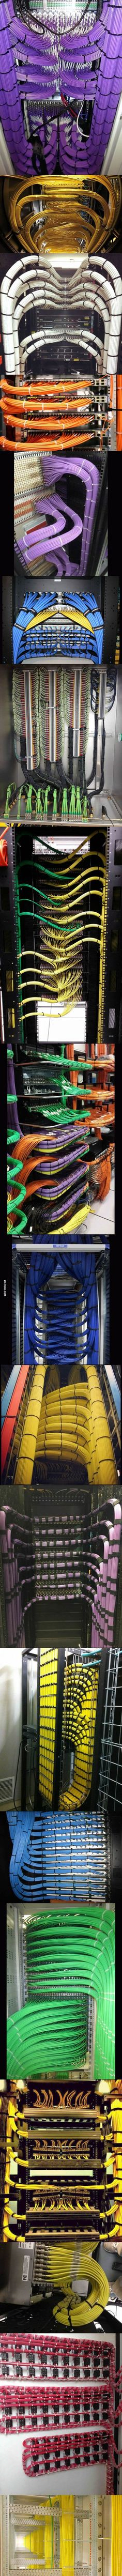 We love seeing beautiful cable management like this!